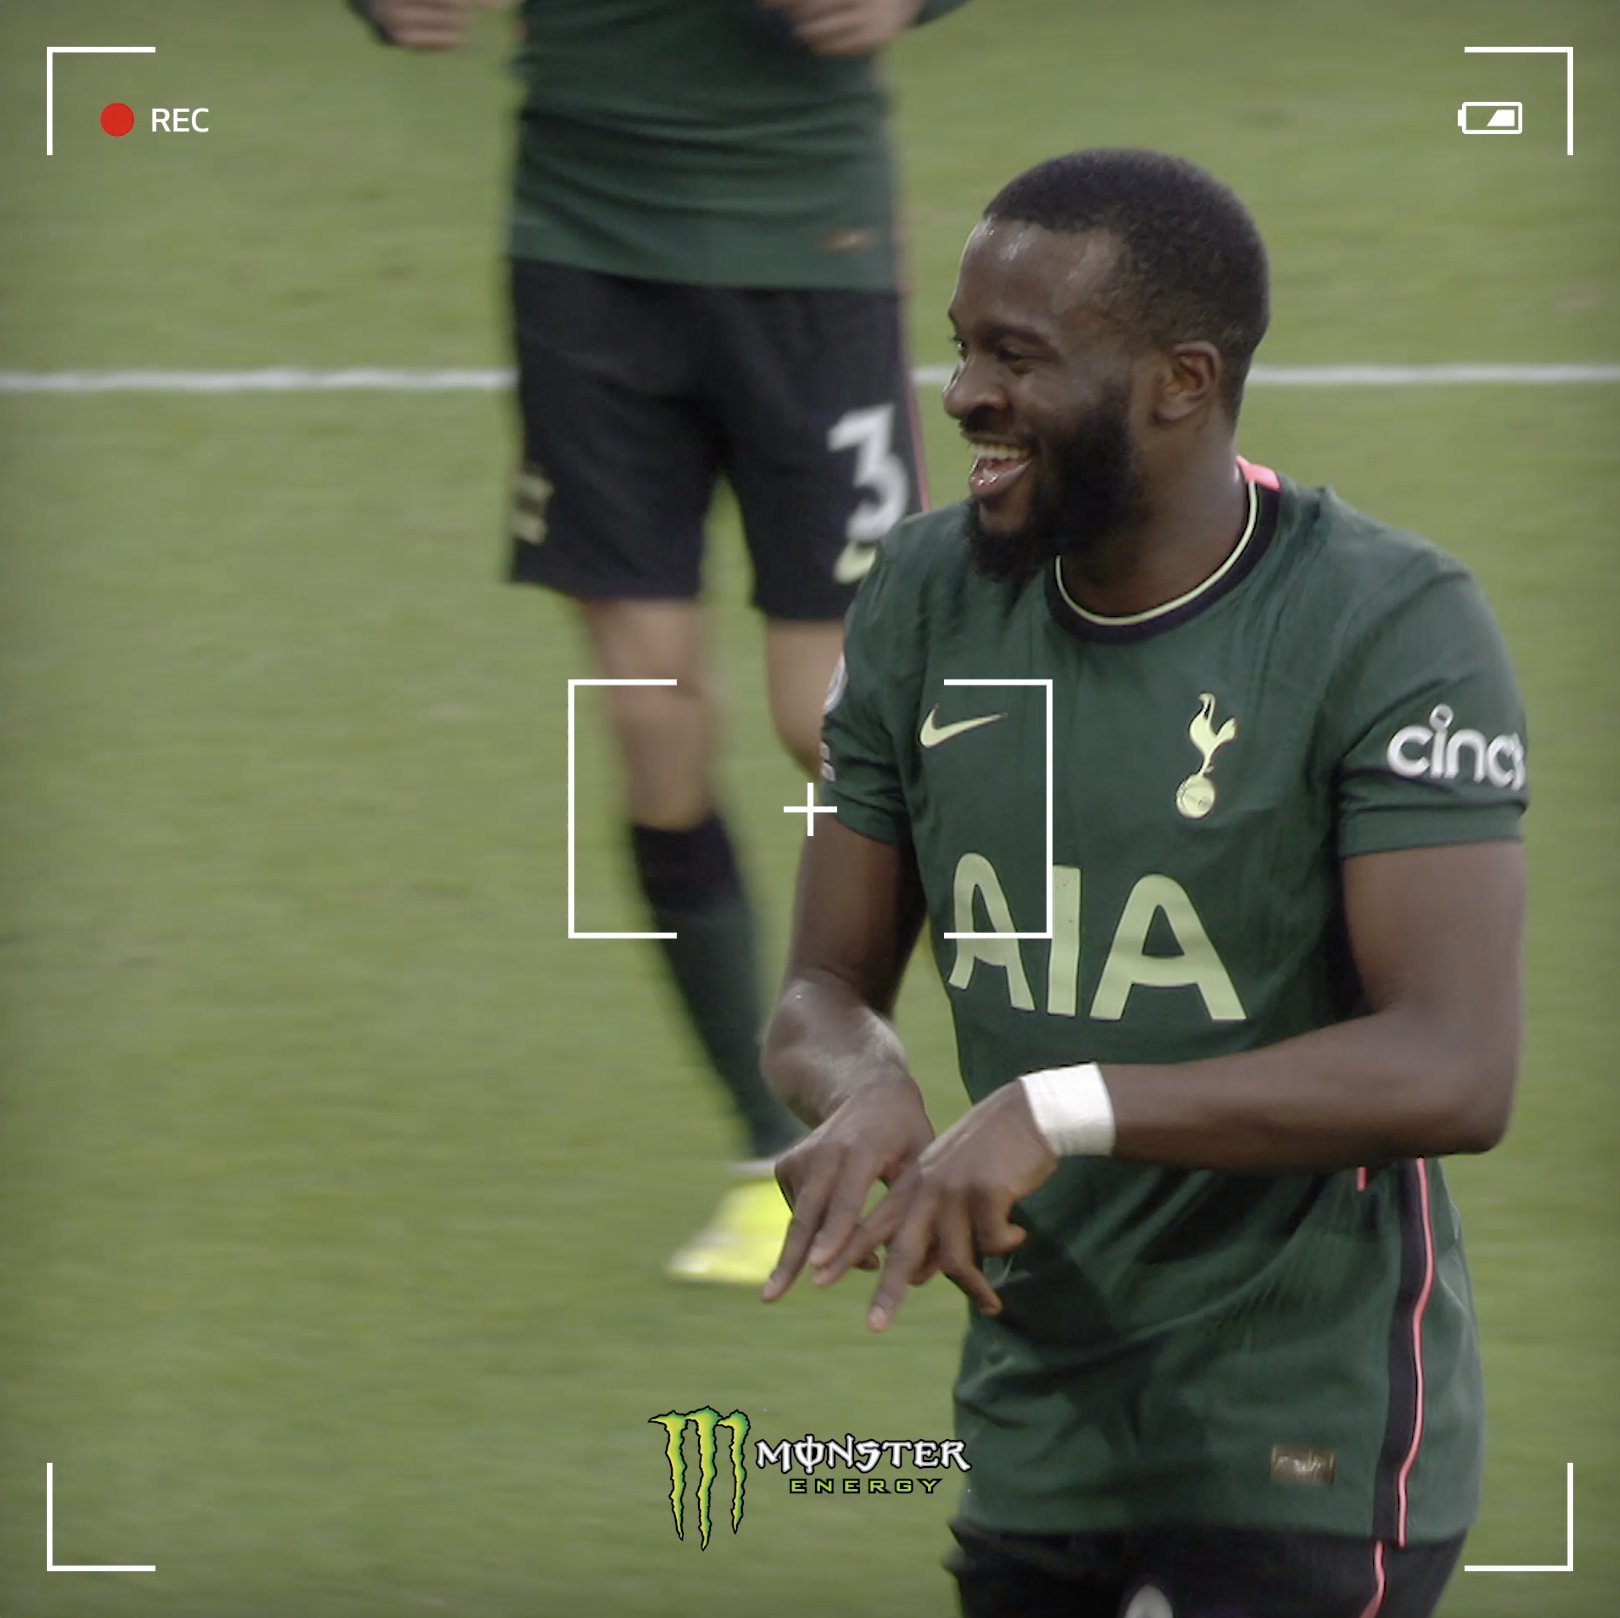 Pitchside views of Tanguy's 𝙨𝙚𝙣𝙨𝙖𝙩𝙞𝙤𝙣𝙖𝙡 strike! 😍  @MonsterEnergy ⚪️ #COYS https://t.co/jbmPT86hPY